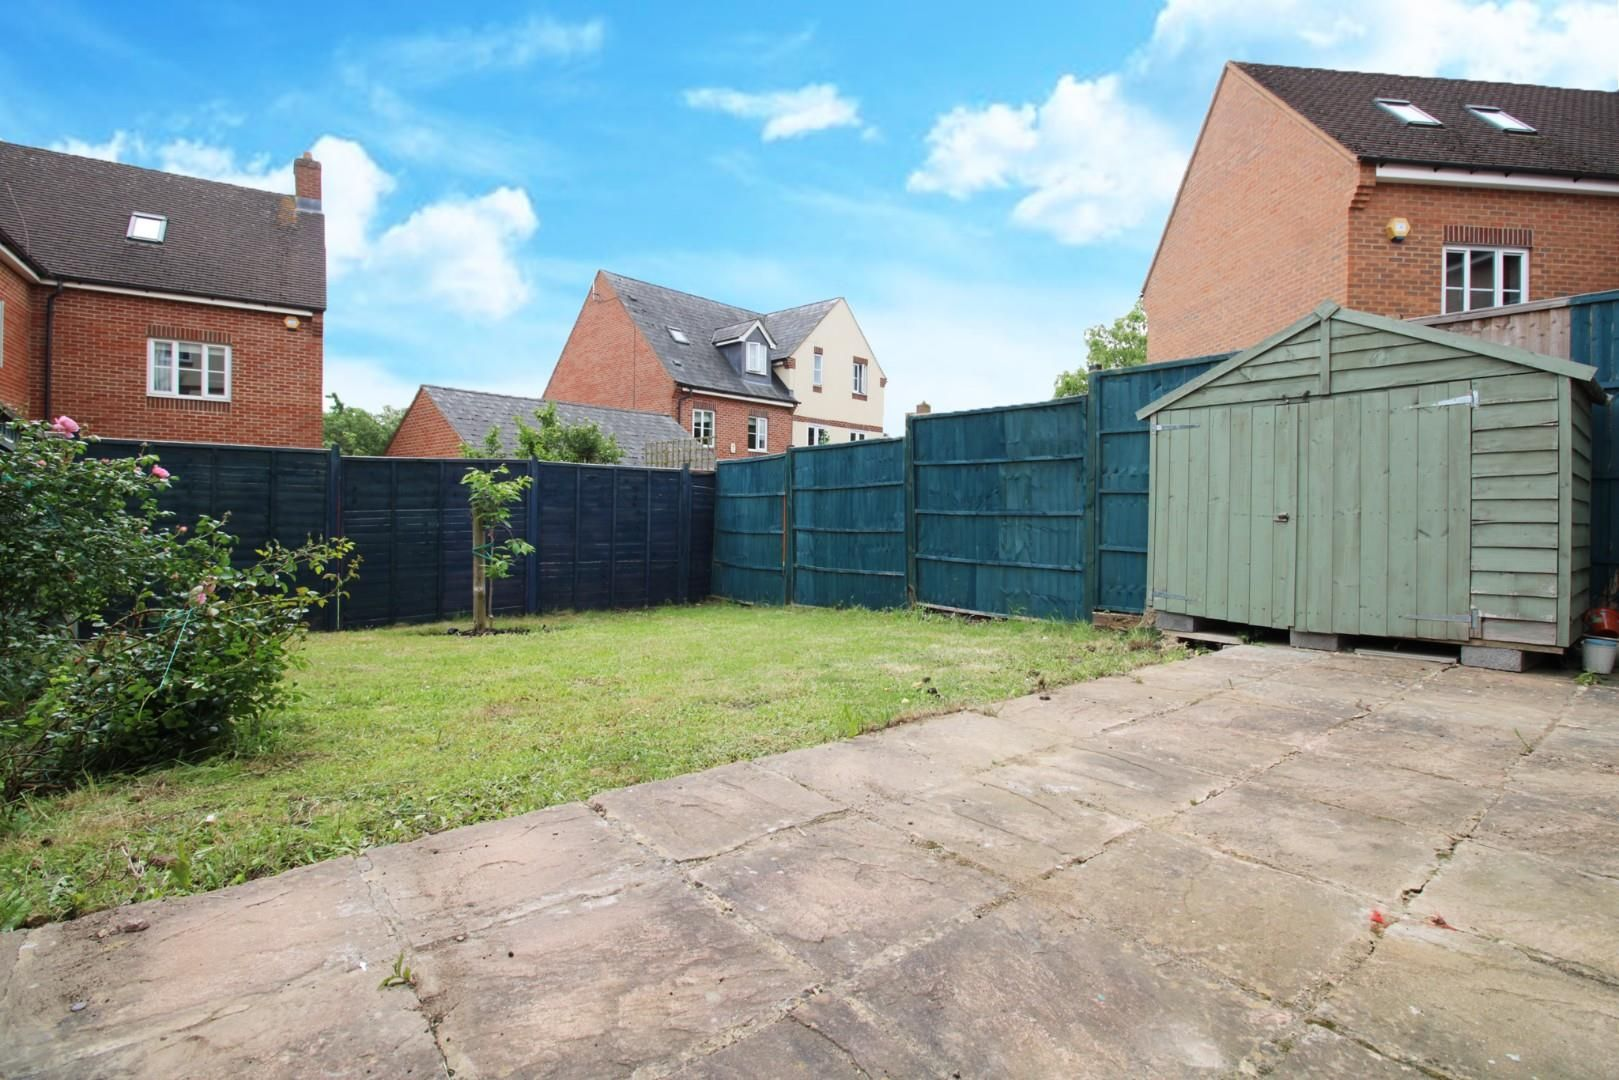 3 bed end of terrace to rent in Shinfield 12